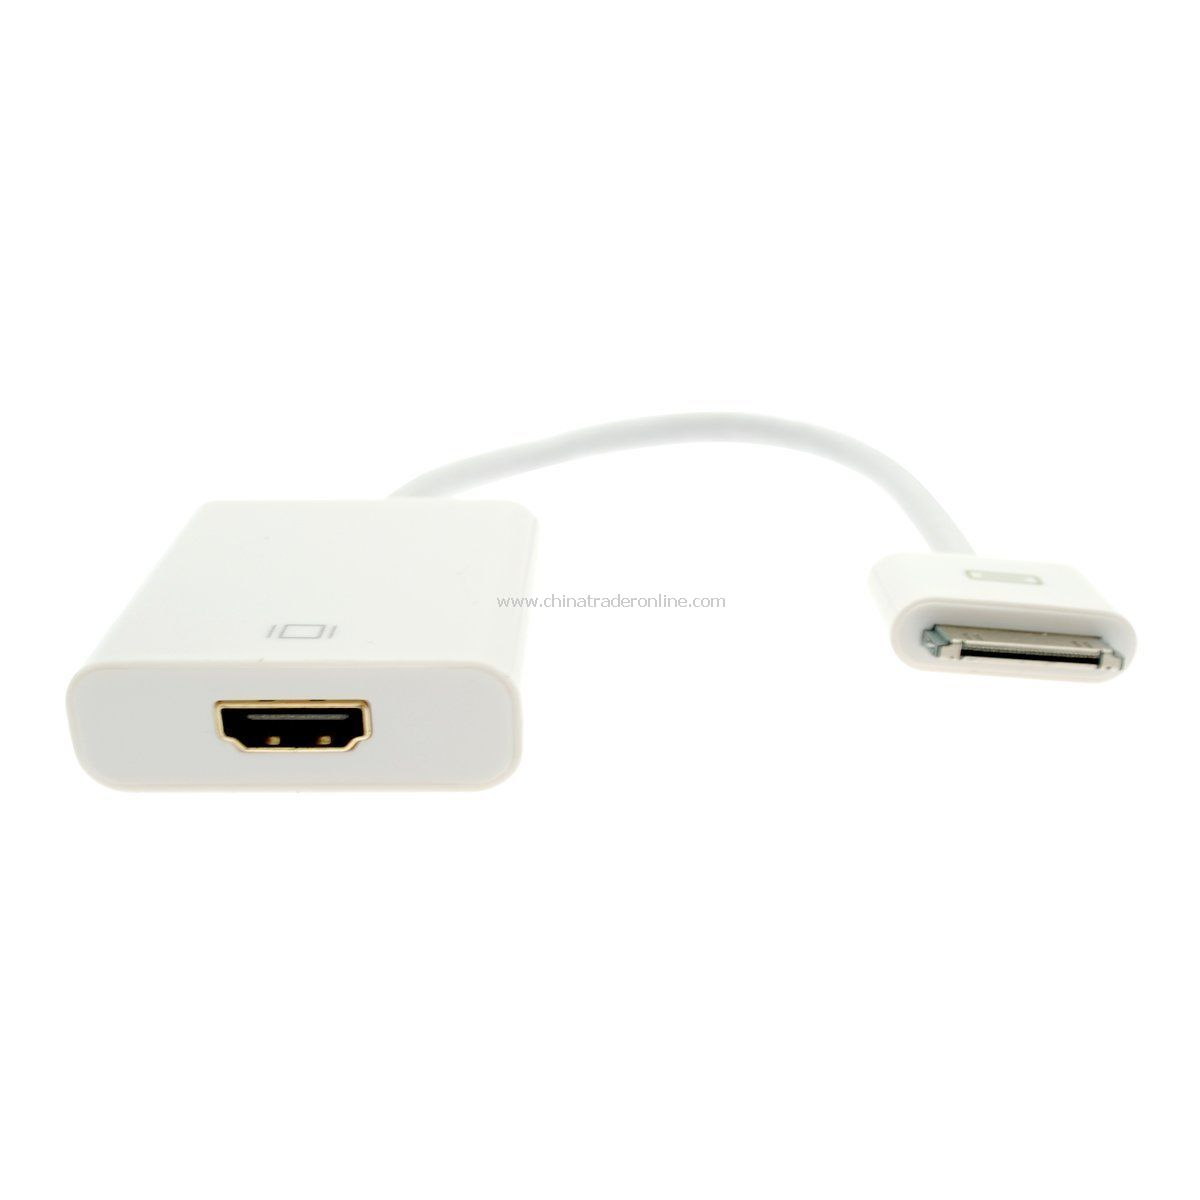 Dock Connector to HDMI Adapter Cable For Iphone 4G 4S iPod Touch Ipad2